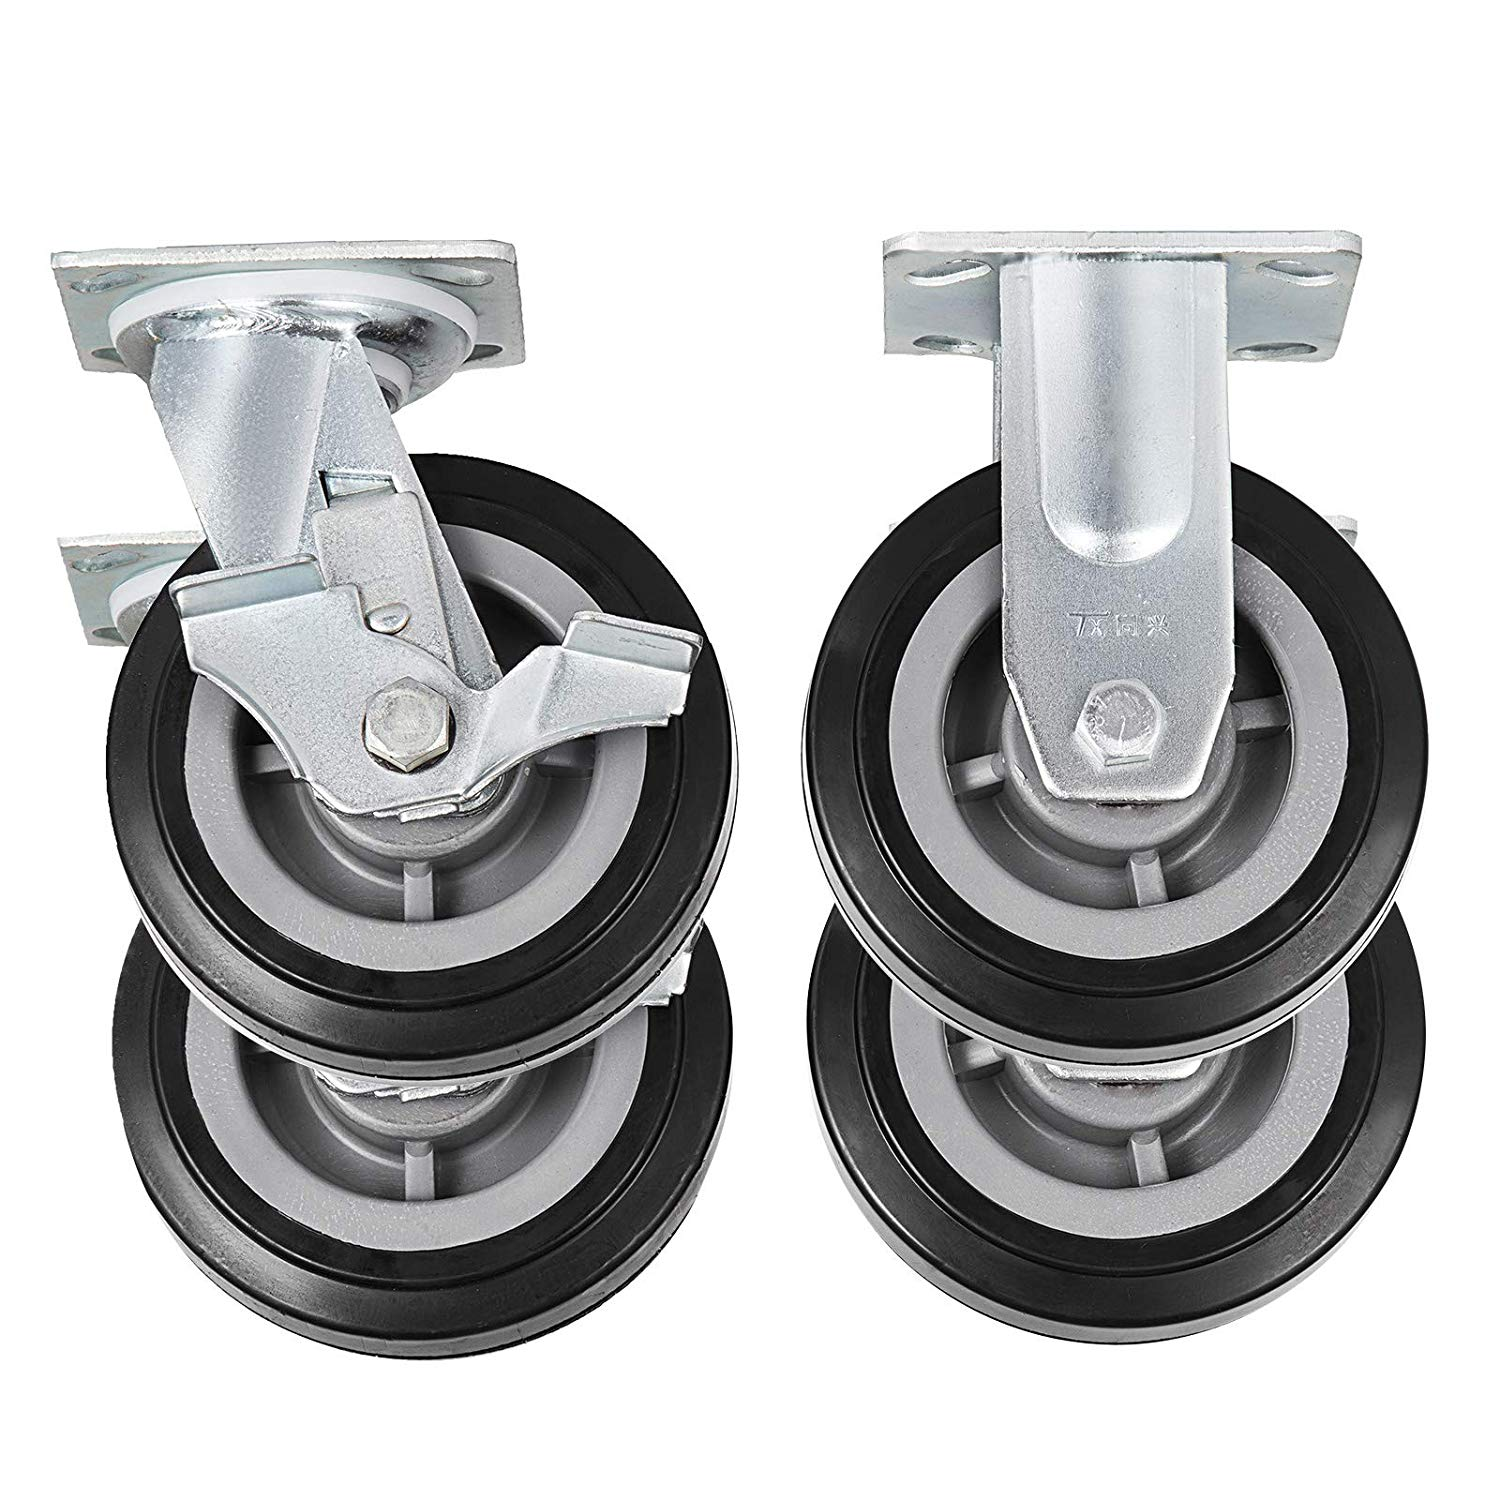 Cheap Wheel Casters Lowes Find Wheel Casters Lowes Deals On Line At Alibaba Com